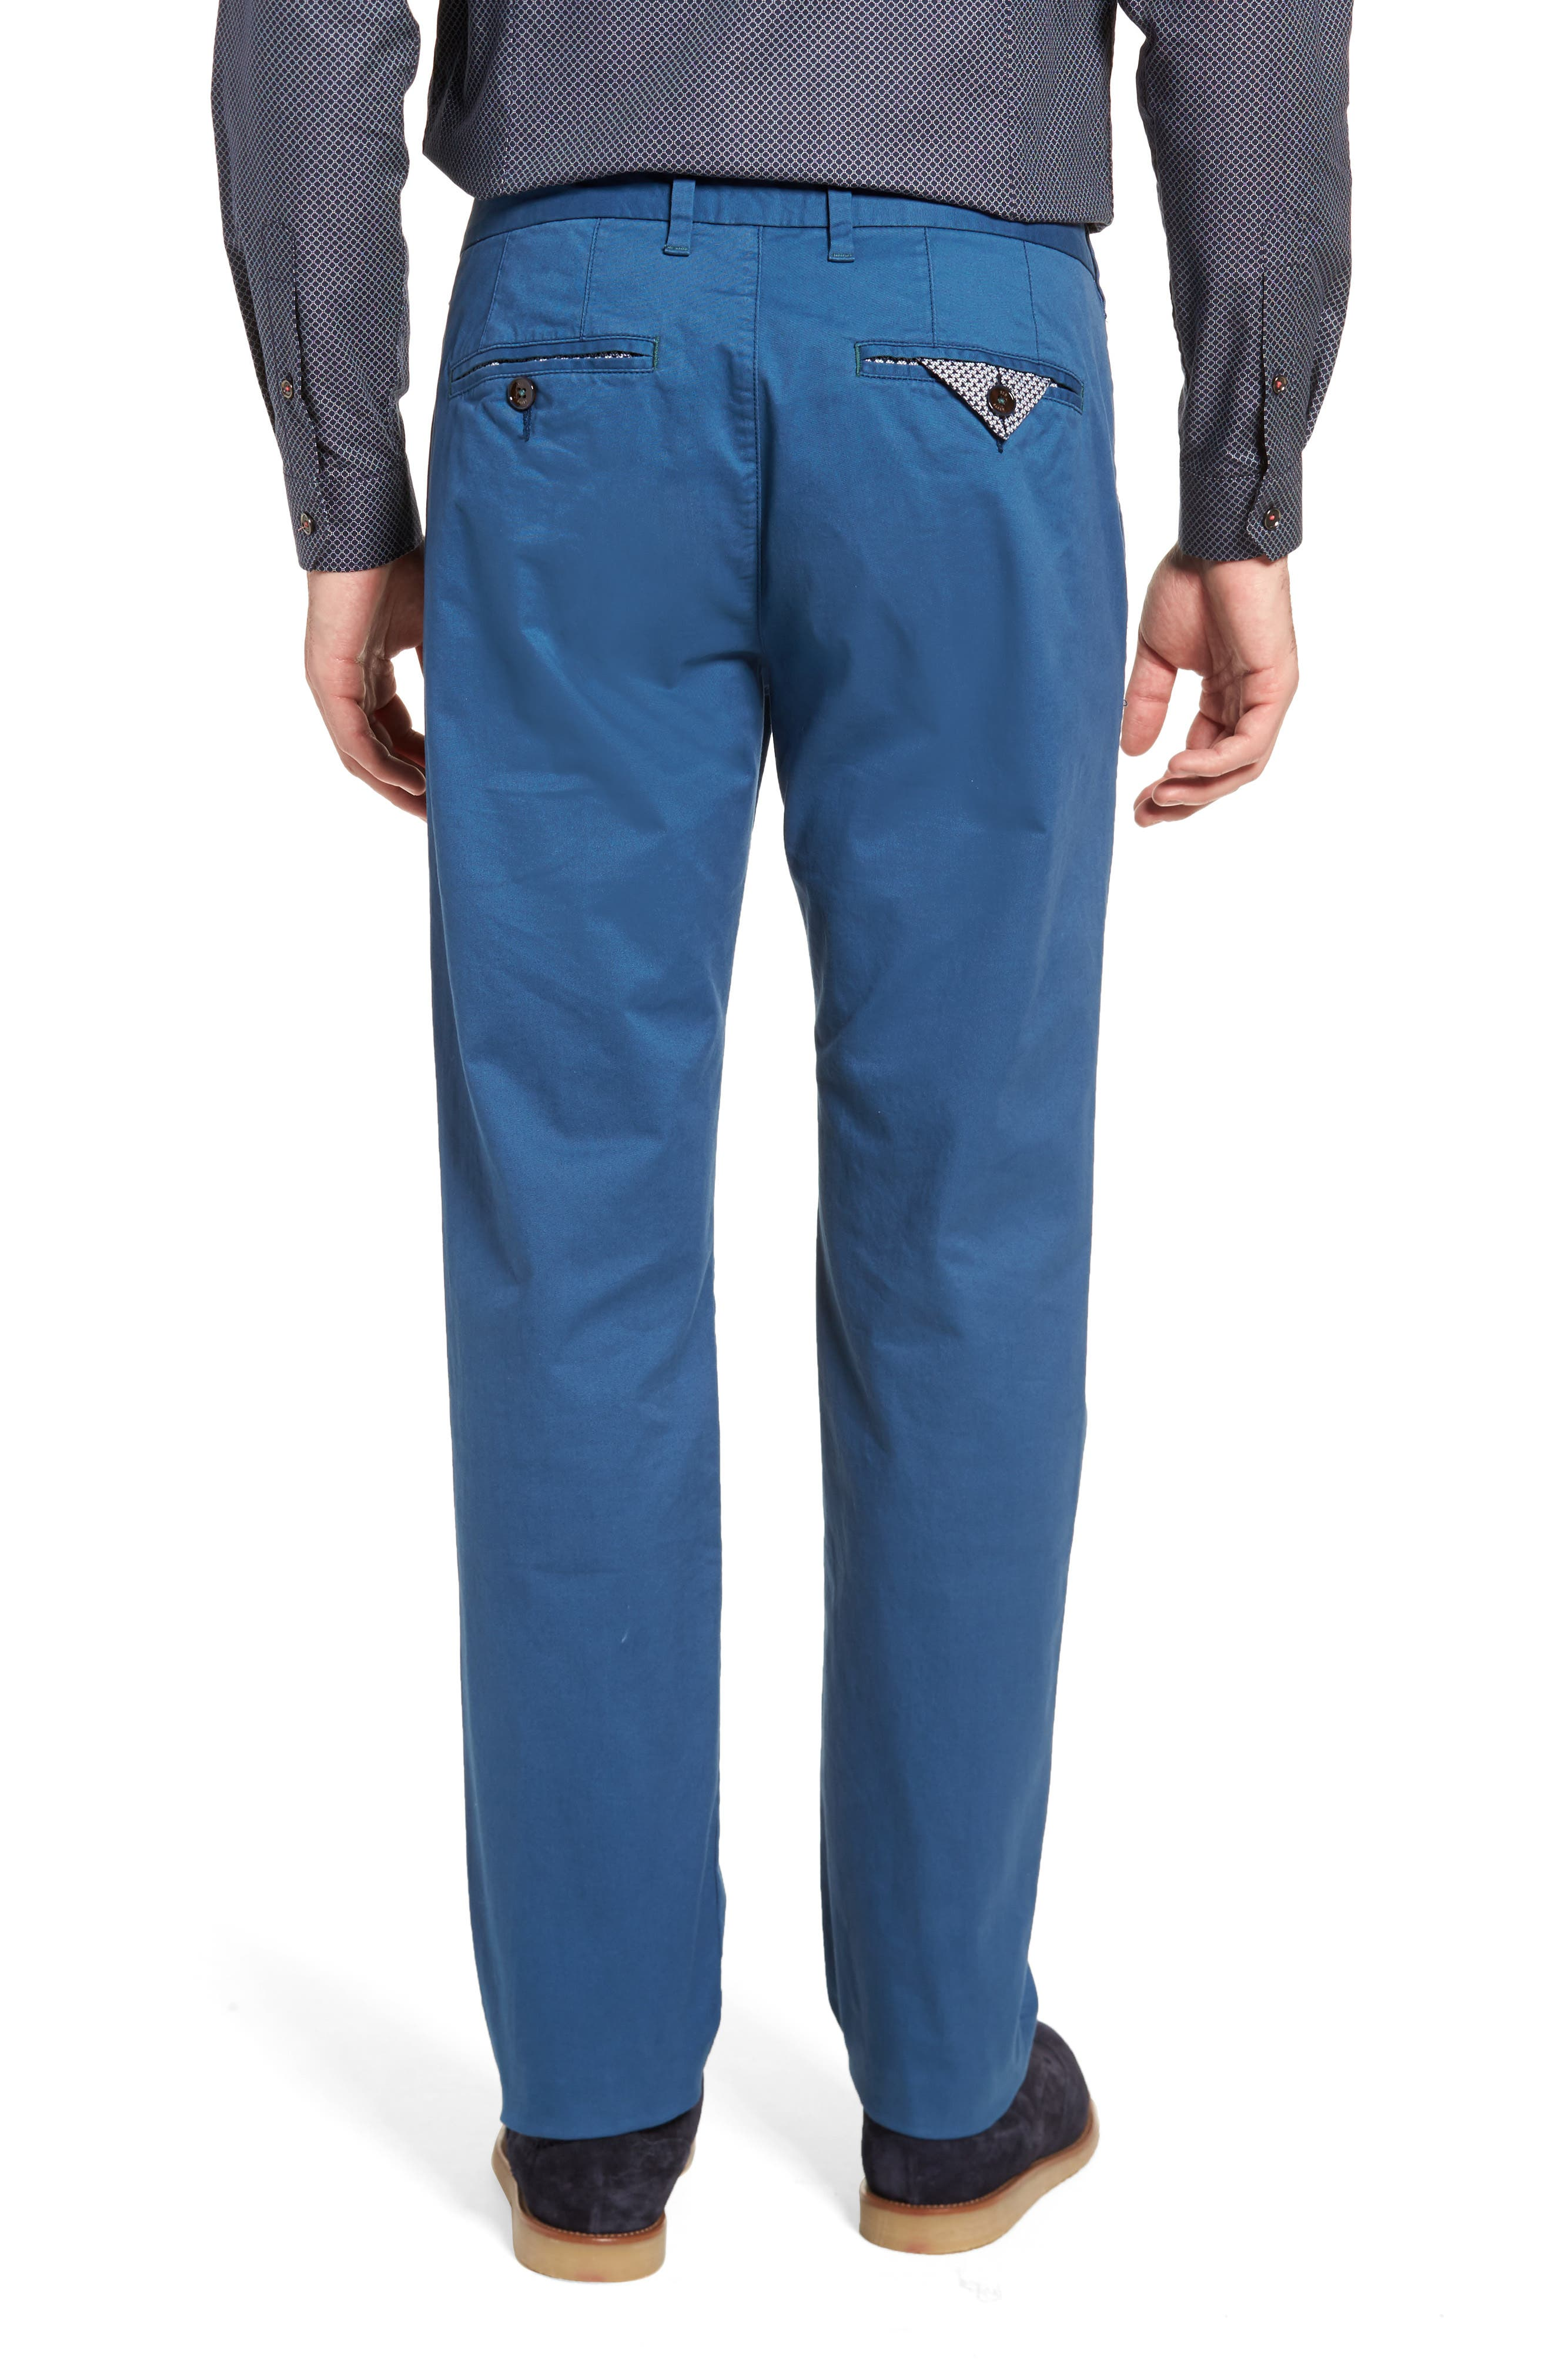 Procor Slim Fit Chino Pants,                             Alternate thumbnail 2, color,                             Navy